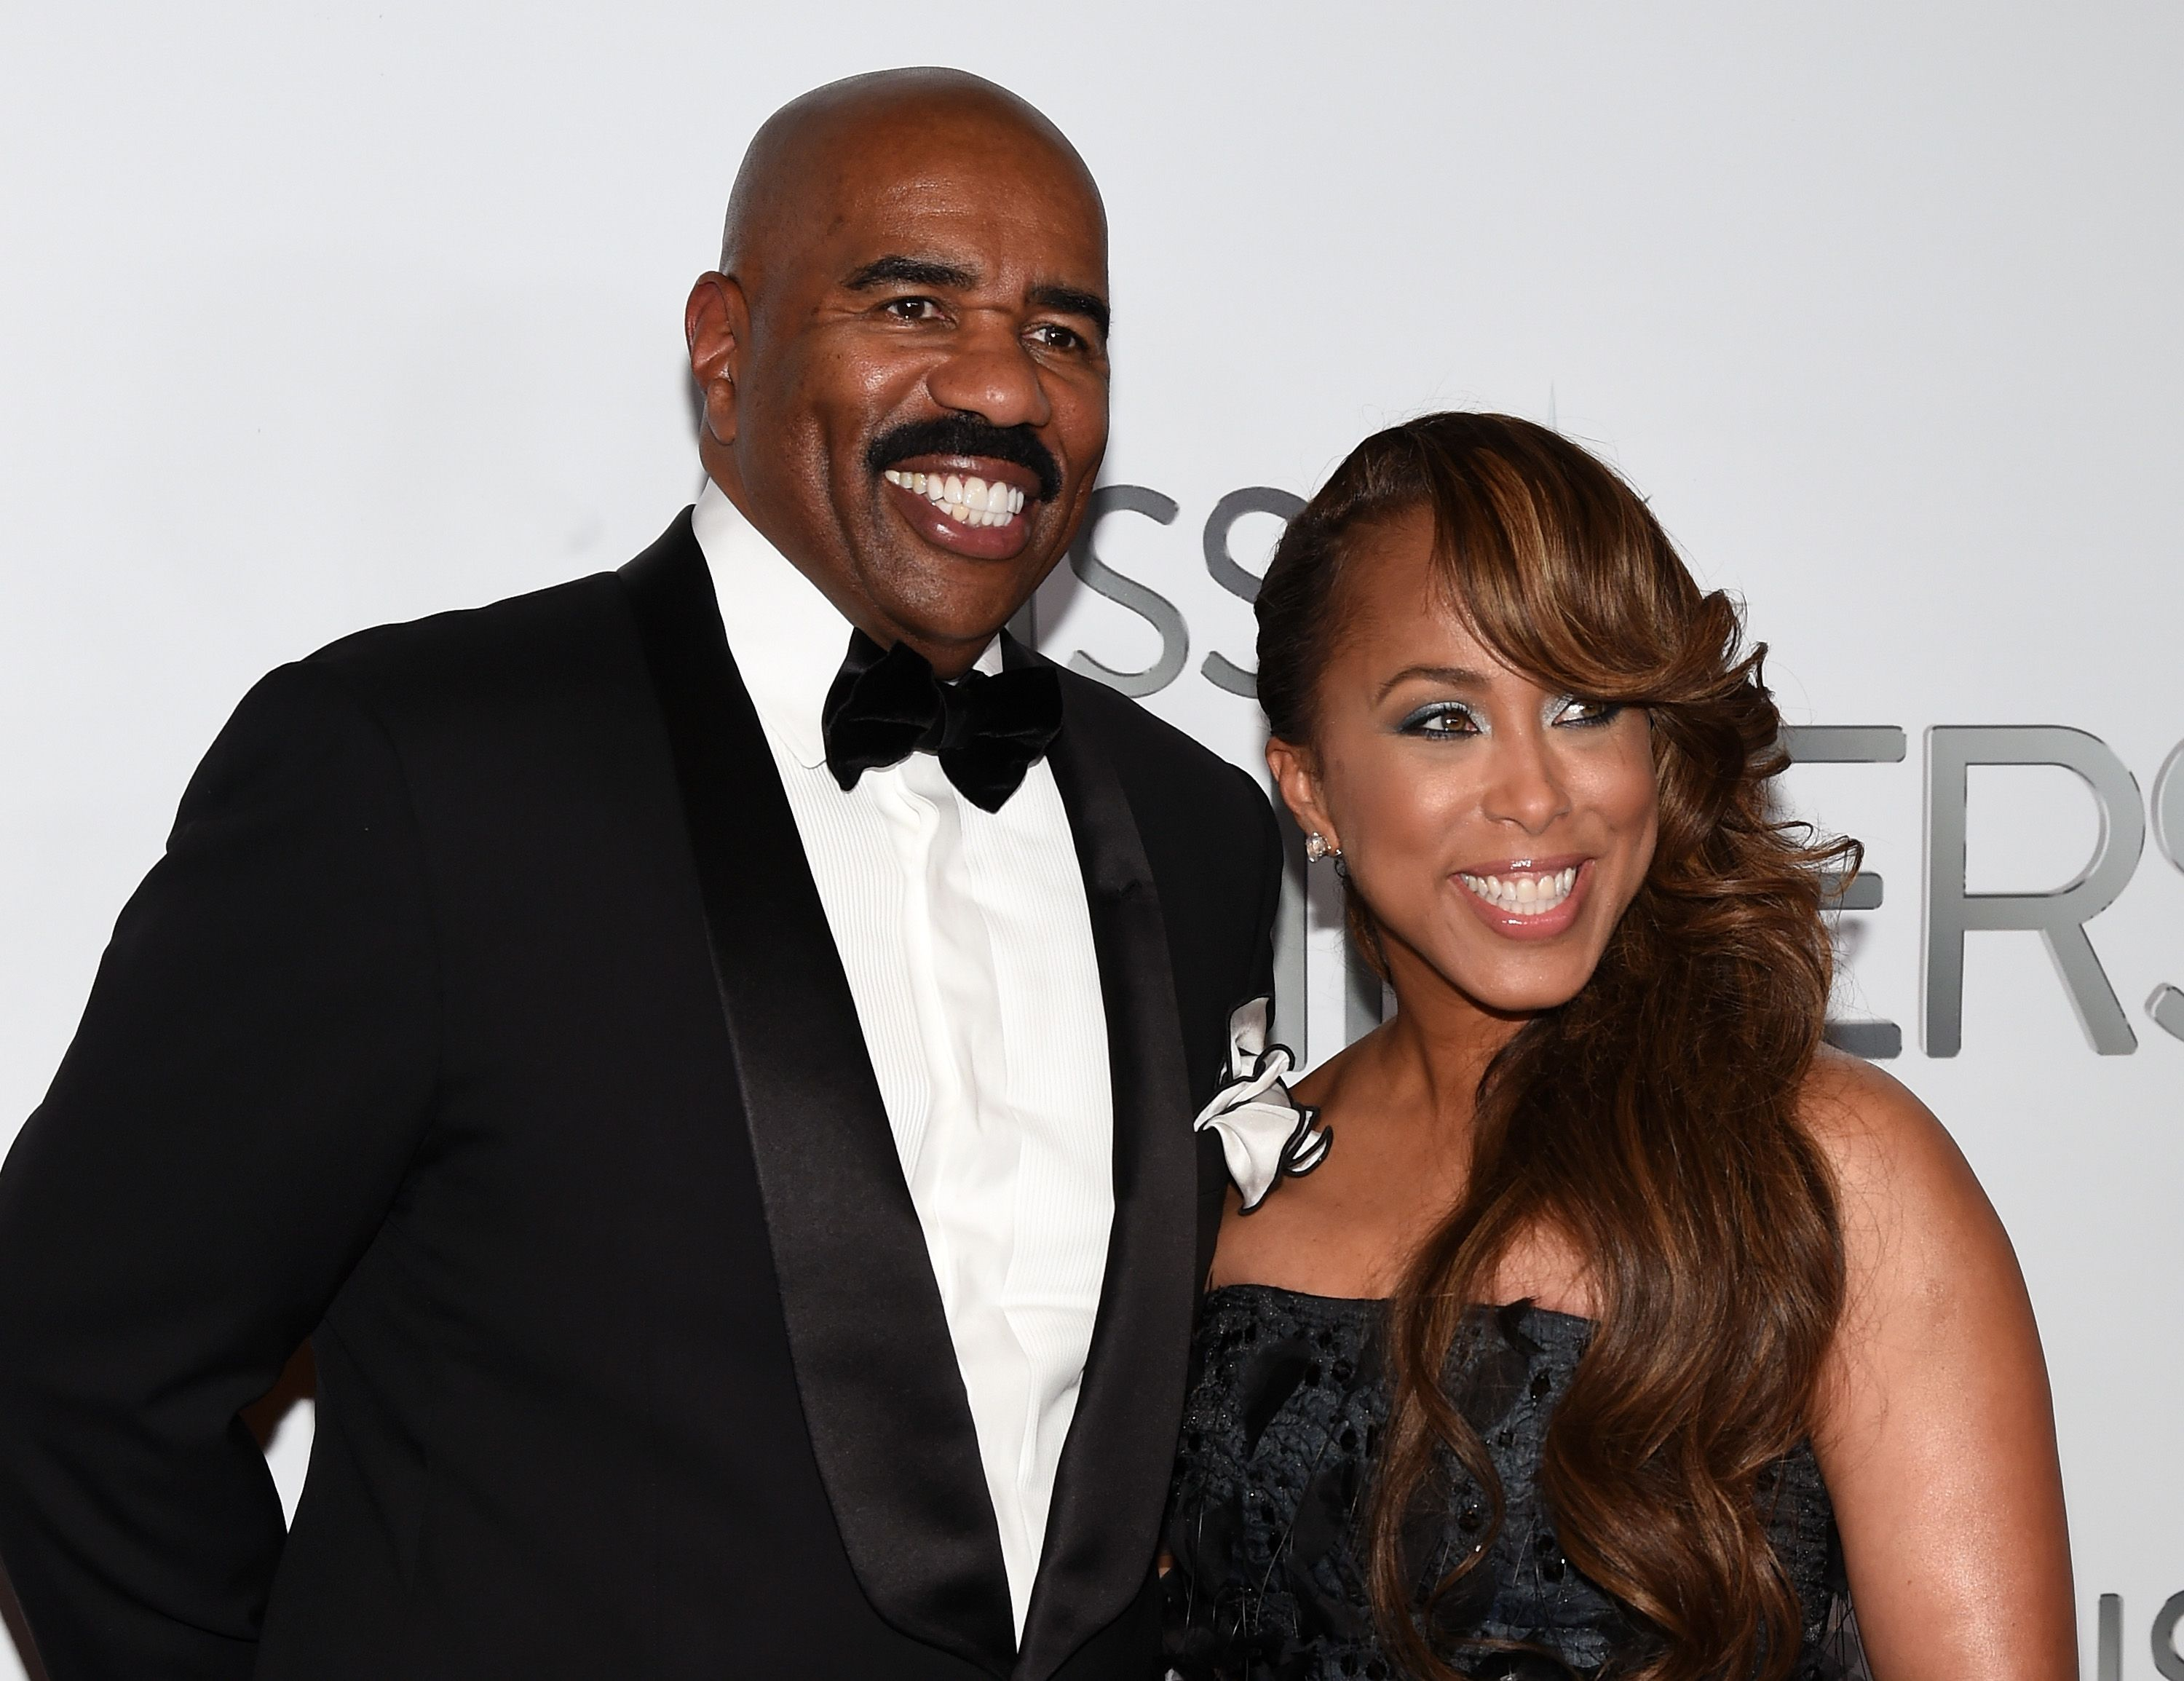 Steve Harvey and his wife Marjorie Harvey at the 2015 Miss Universe Pageant at Planet Hollywood Resort & Casino in Las Vegas on December 20, 2015  | Photo: Getty Images